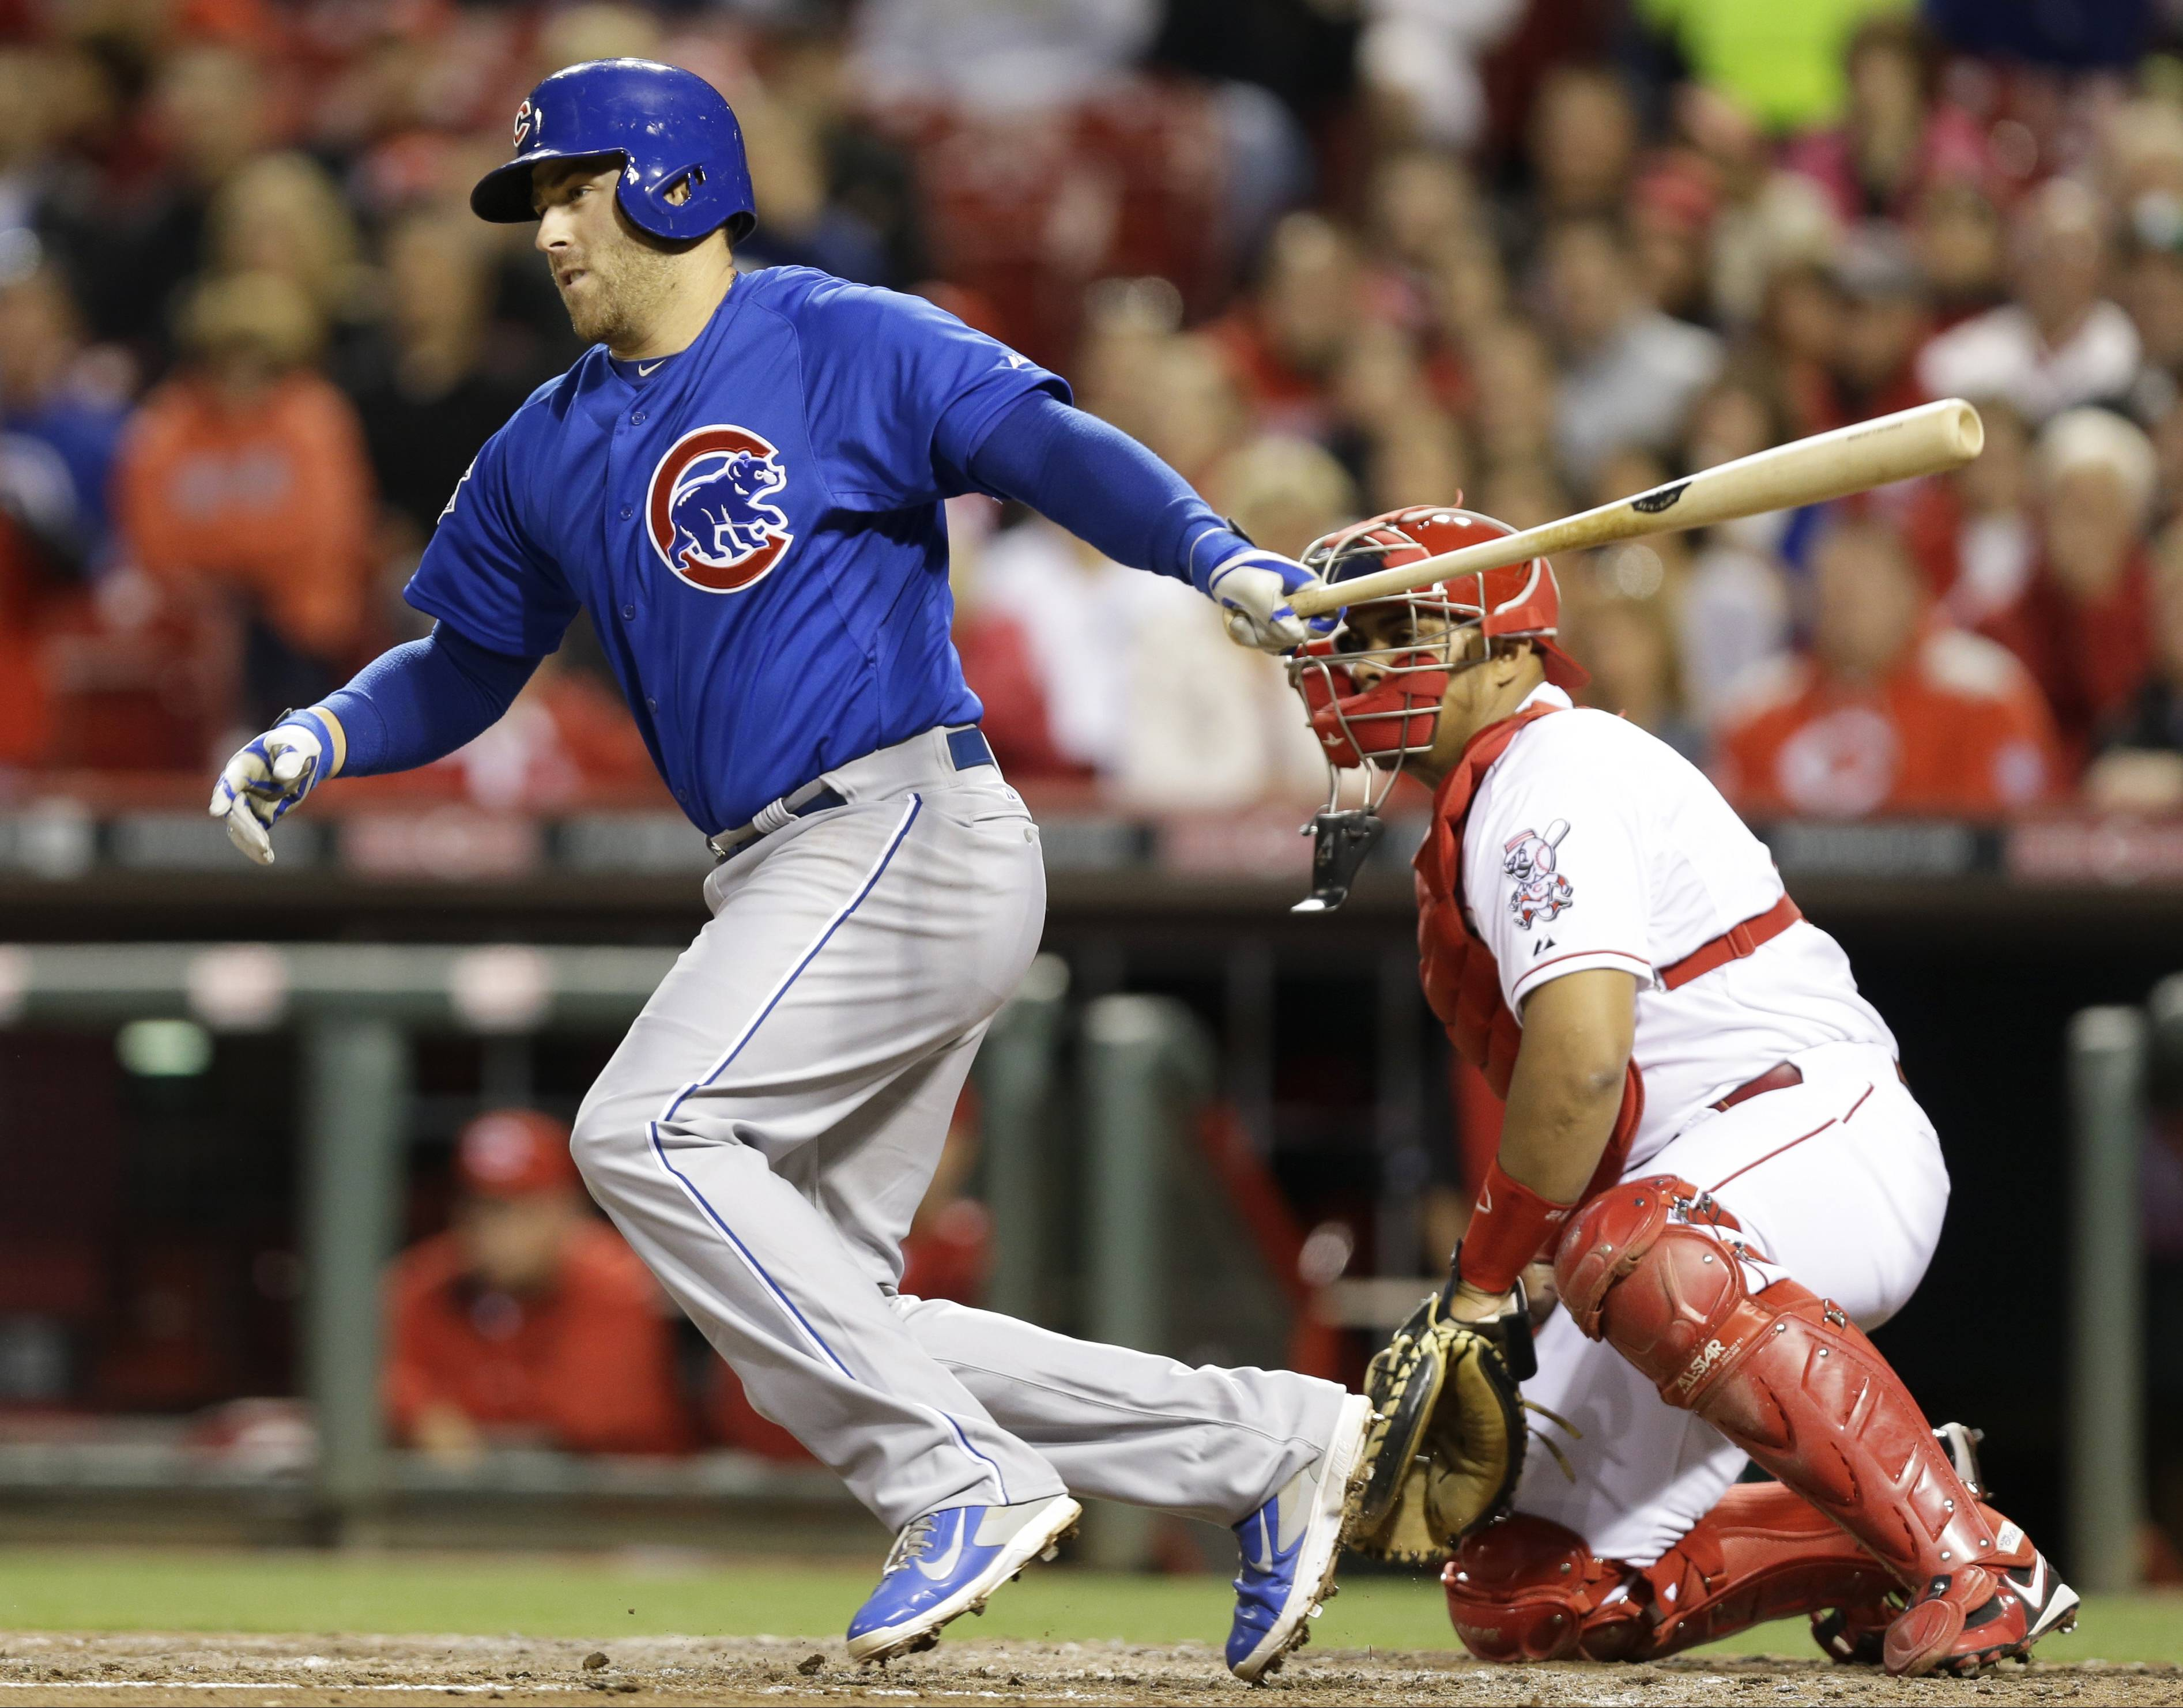 Chicago Cubs' Mike Olt drives in a run in the fifth inning of a baseball game against the Cincinnati Reds, Wednesday, April 30, 2014, in Cincinnati. Brayan Pena catches at right. (AP Photo)